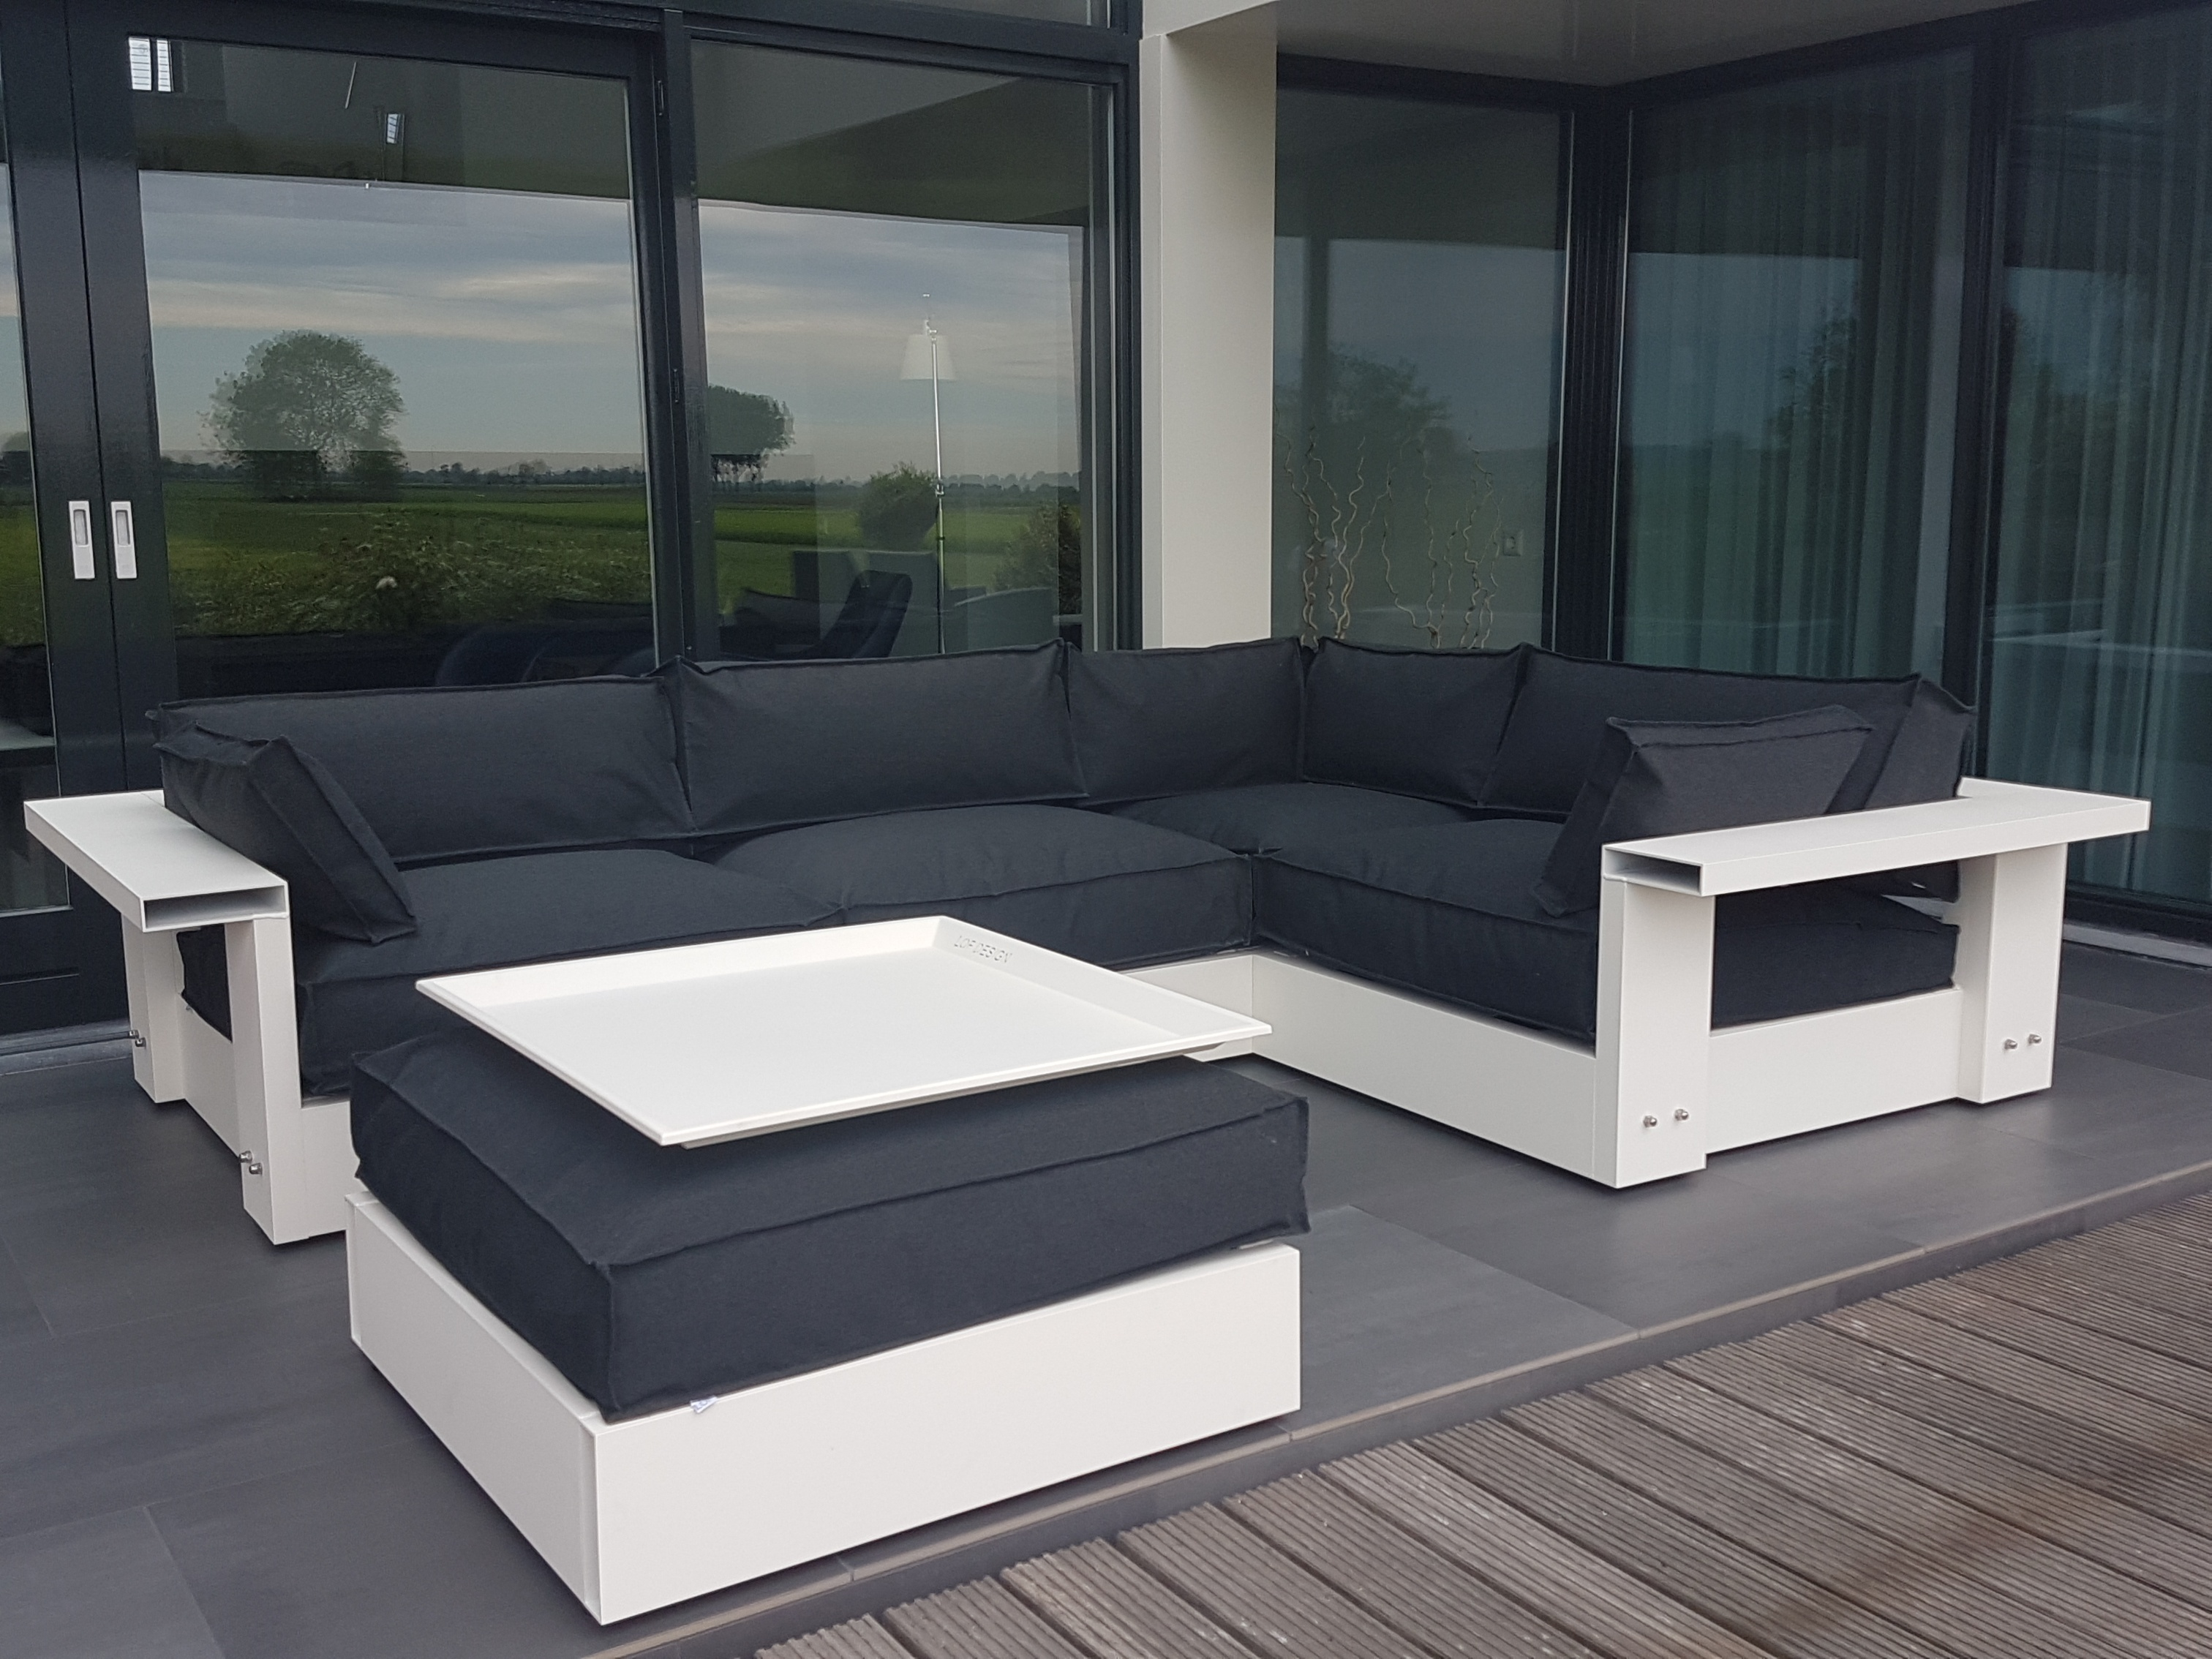 Latex Ral 9010 Lounge 13al Design Bart Vos Lofdesign